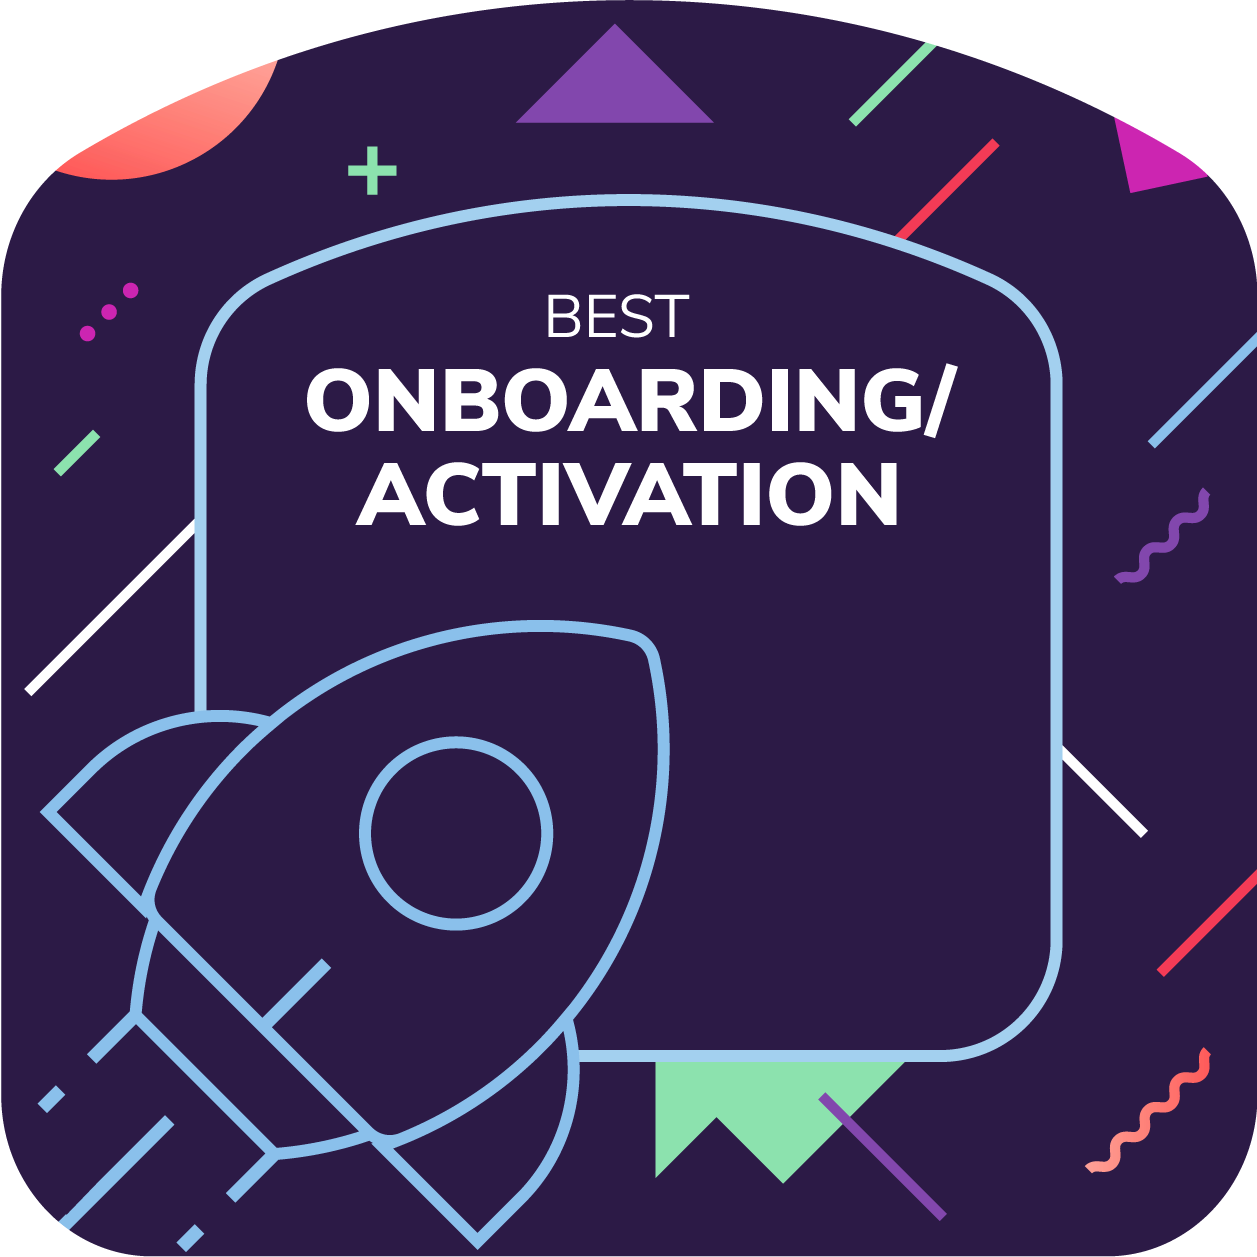 Best Onboarding or Activation